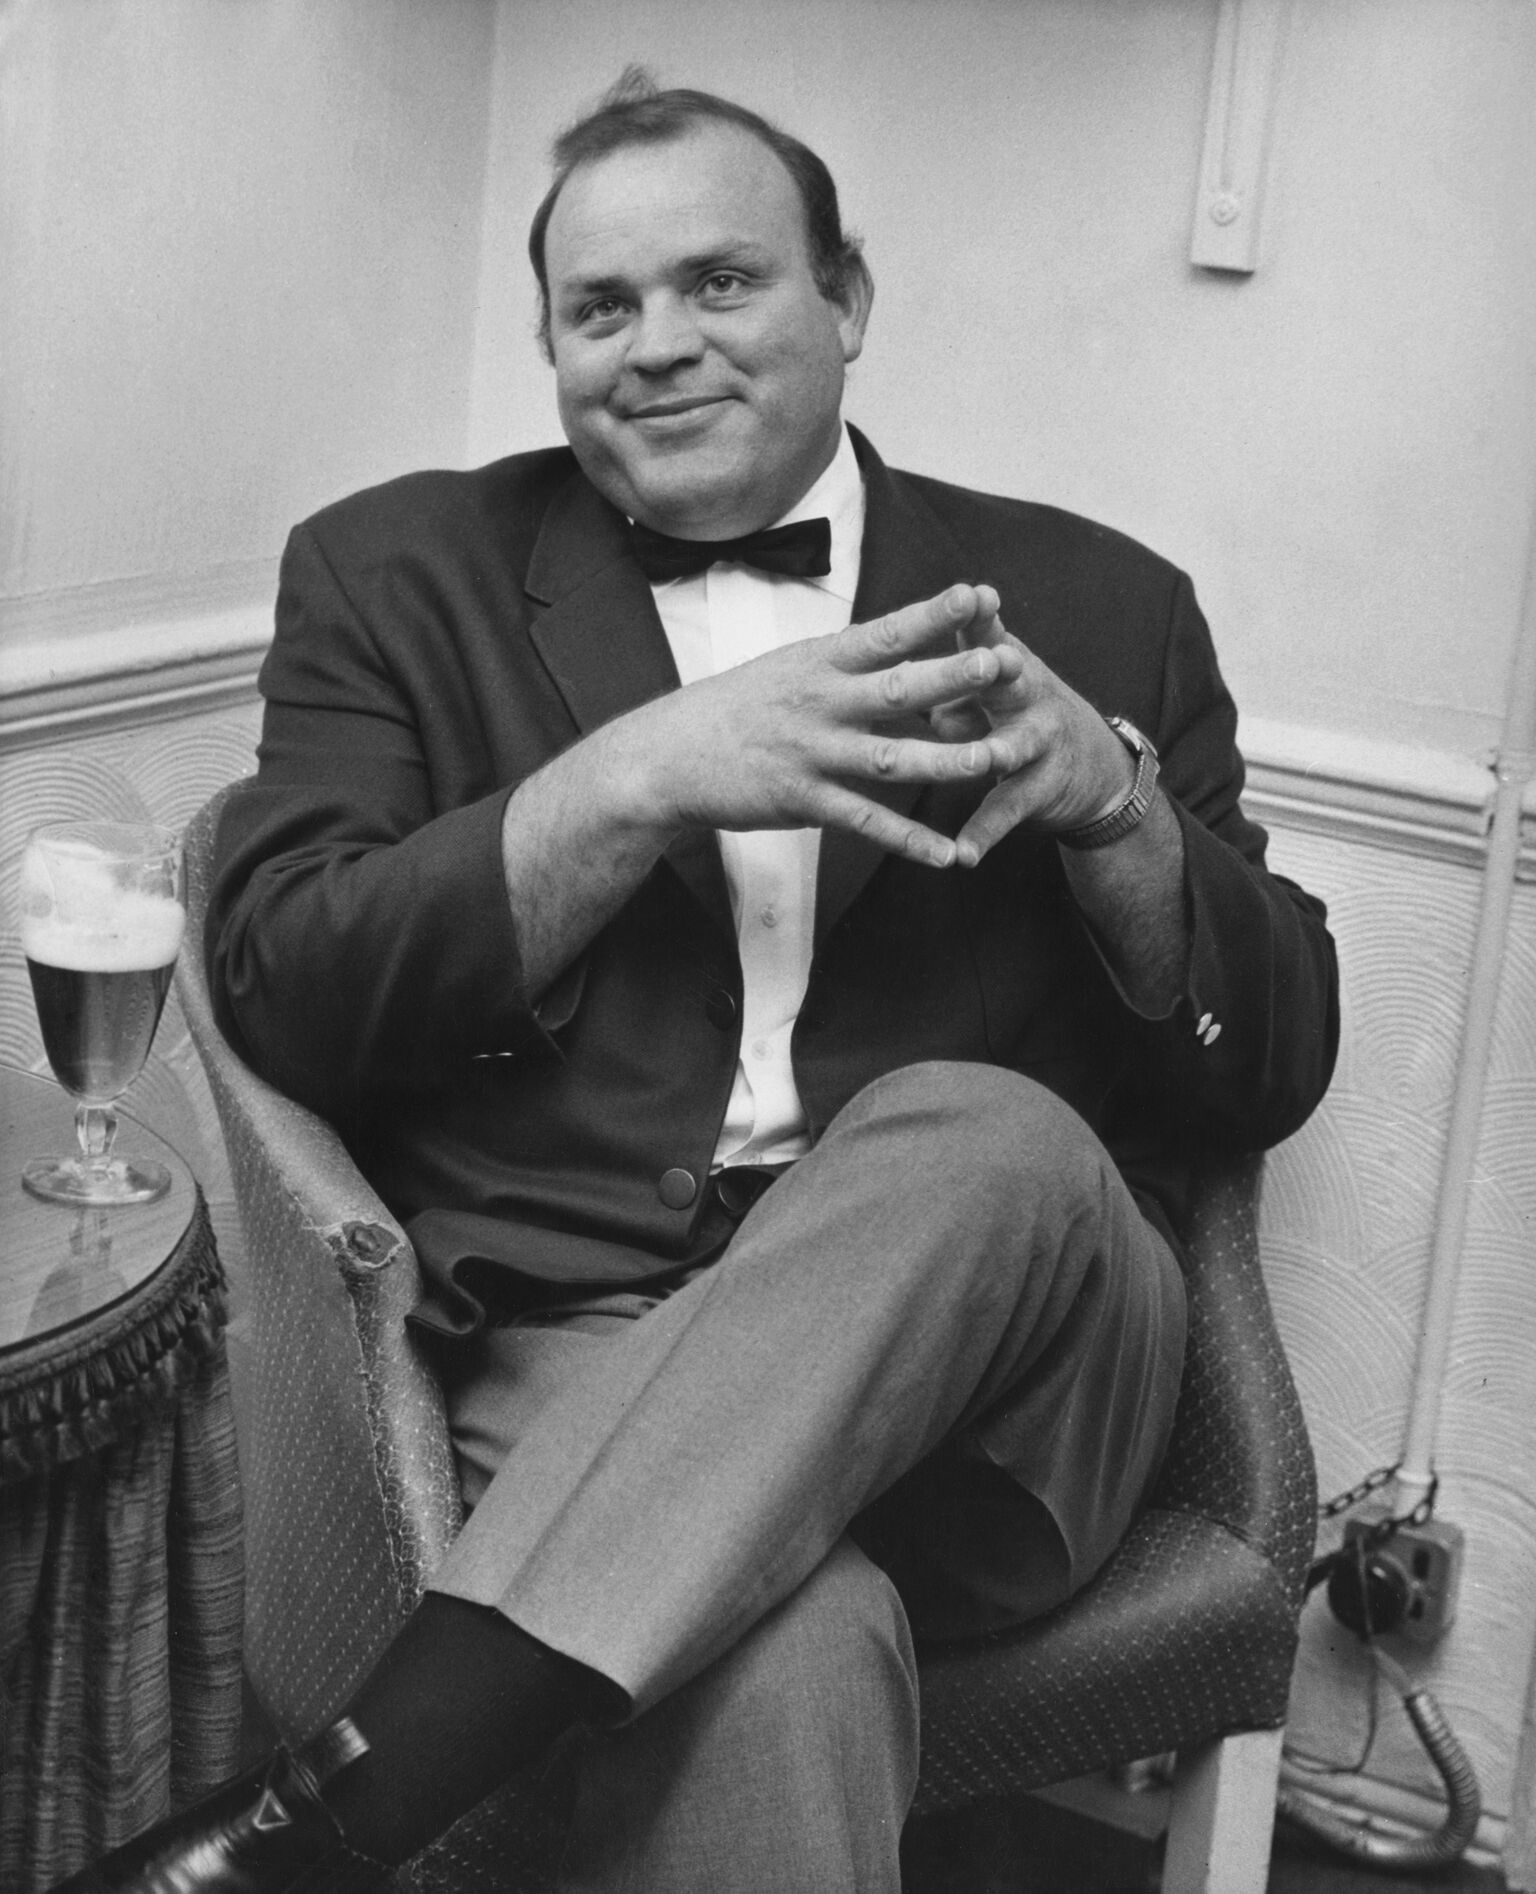 Dan Blocker in his dressing room at the London Palladium, 9th May 1966. | Getty Images / Global Images Ukraine